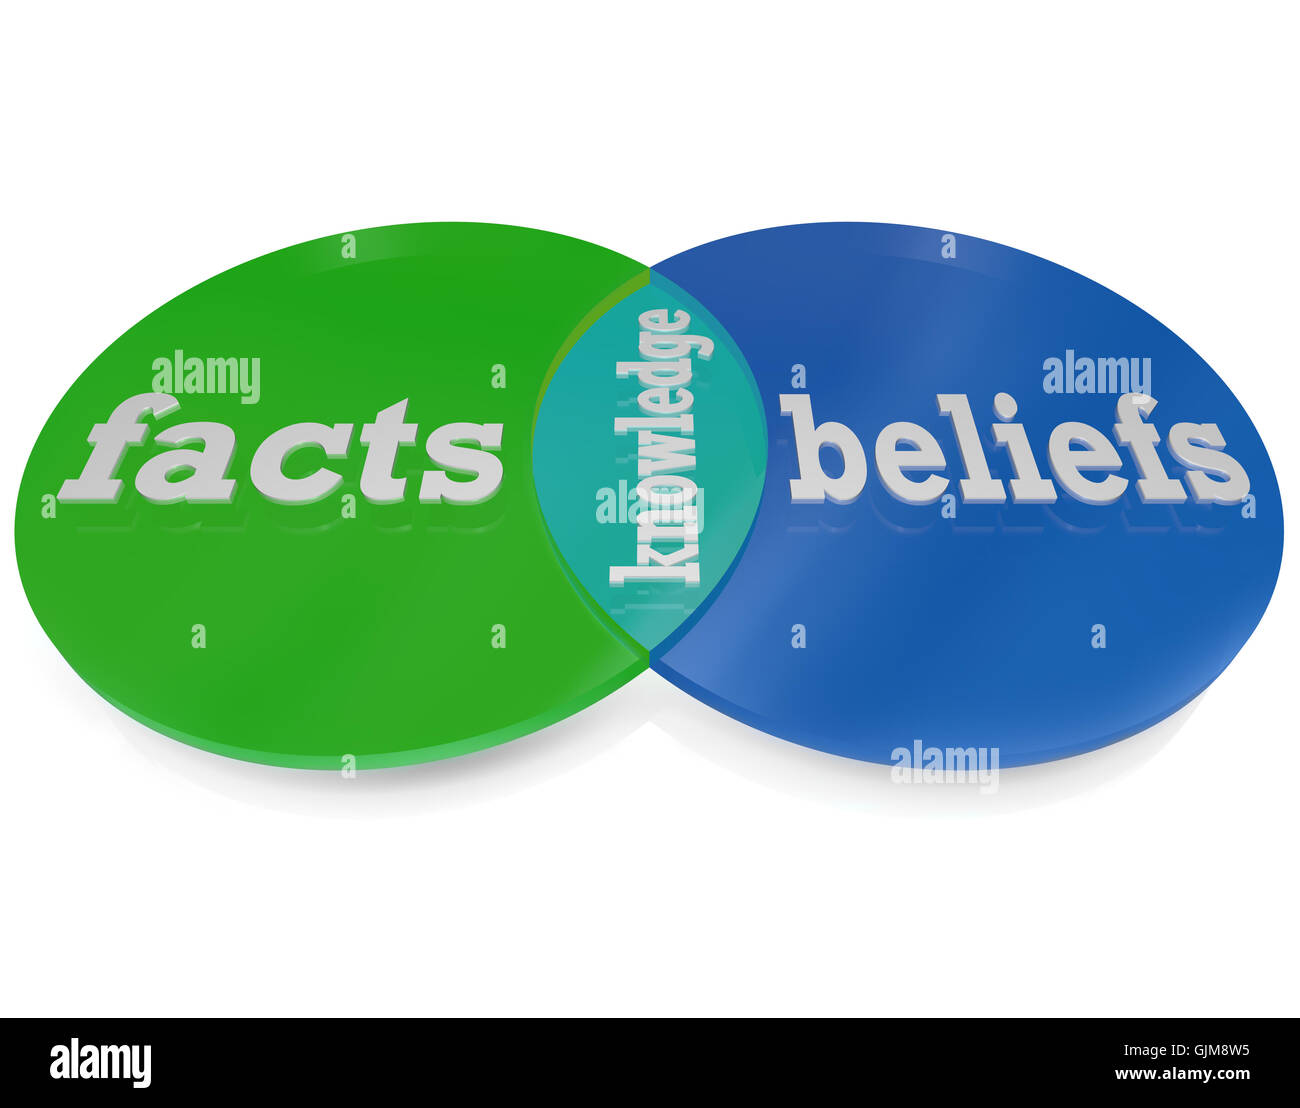 Knowledge is where facts and beliefs overlap venn diagram stock knowledge is where facts and beliefs overlap venn diagram pooptronica